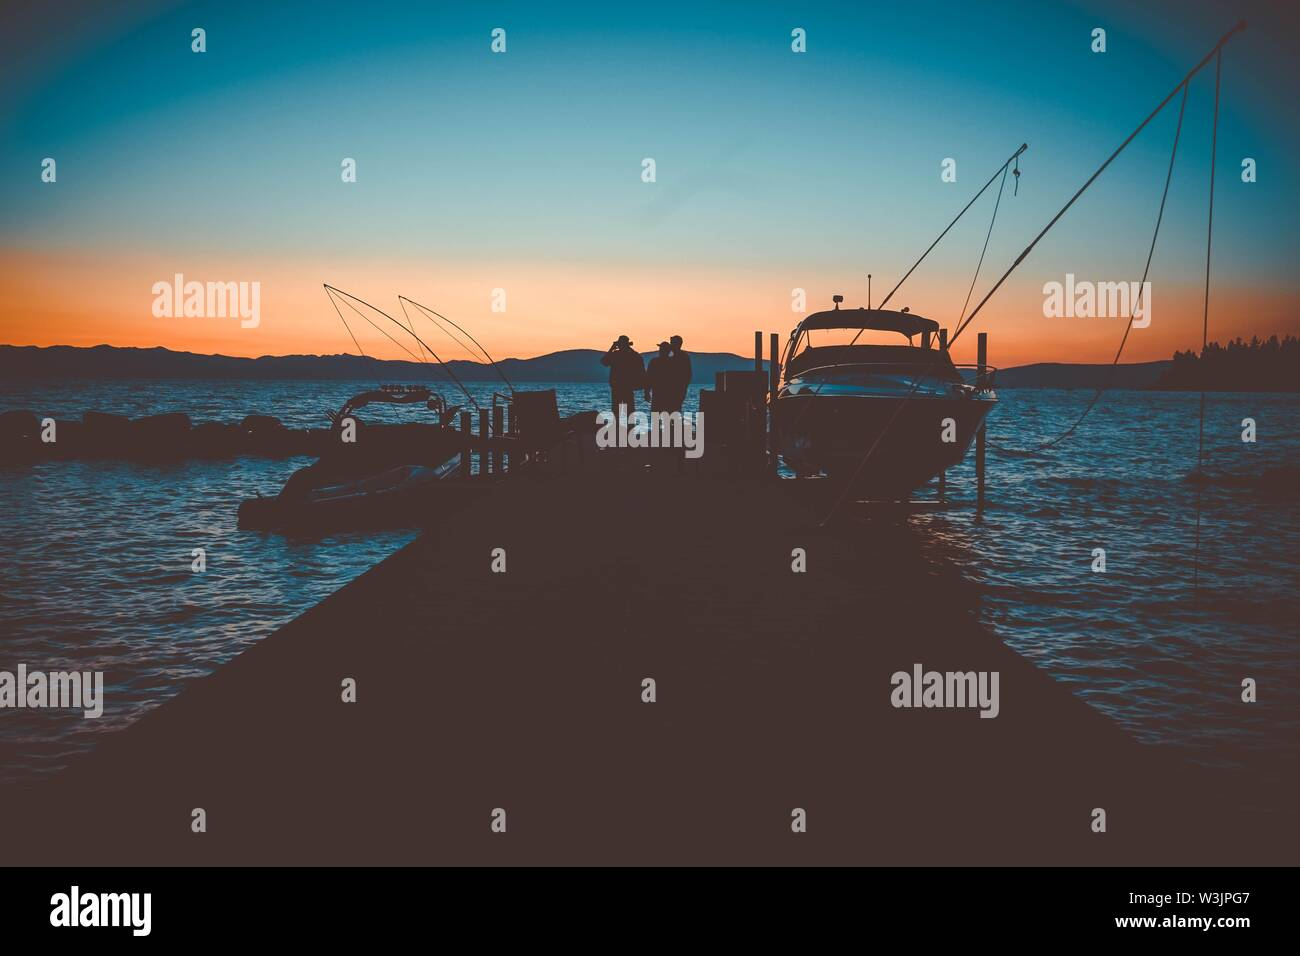 A people standing on a dock near the boats at sunset in Lake Tahoe, NV. - Stock Image